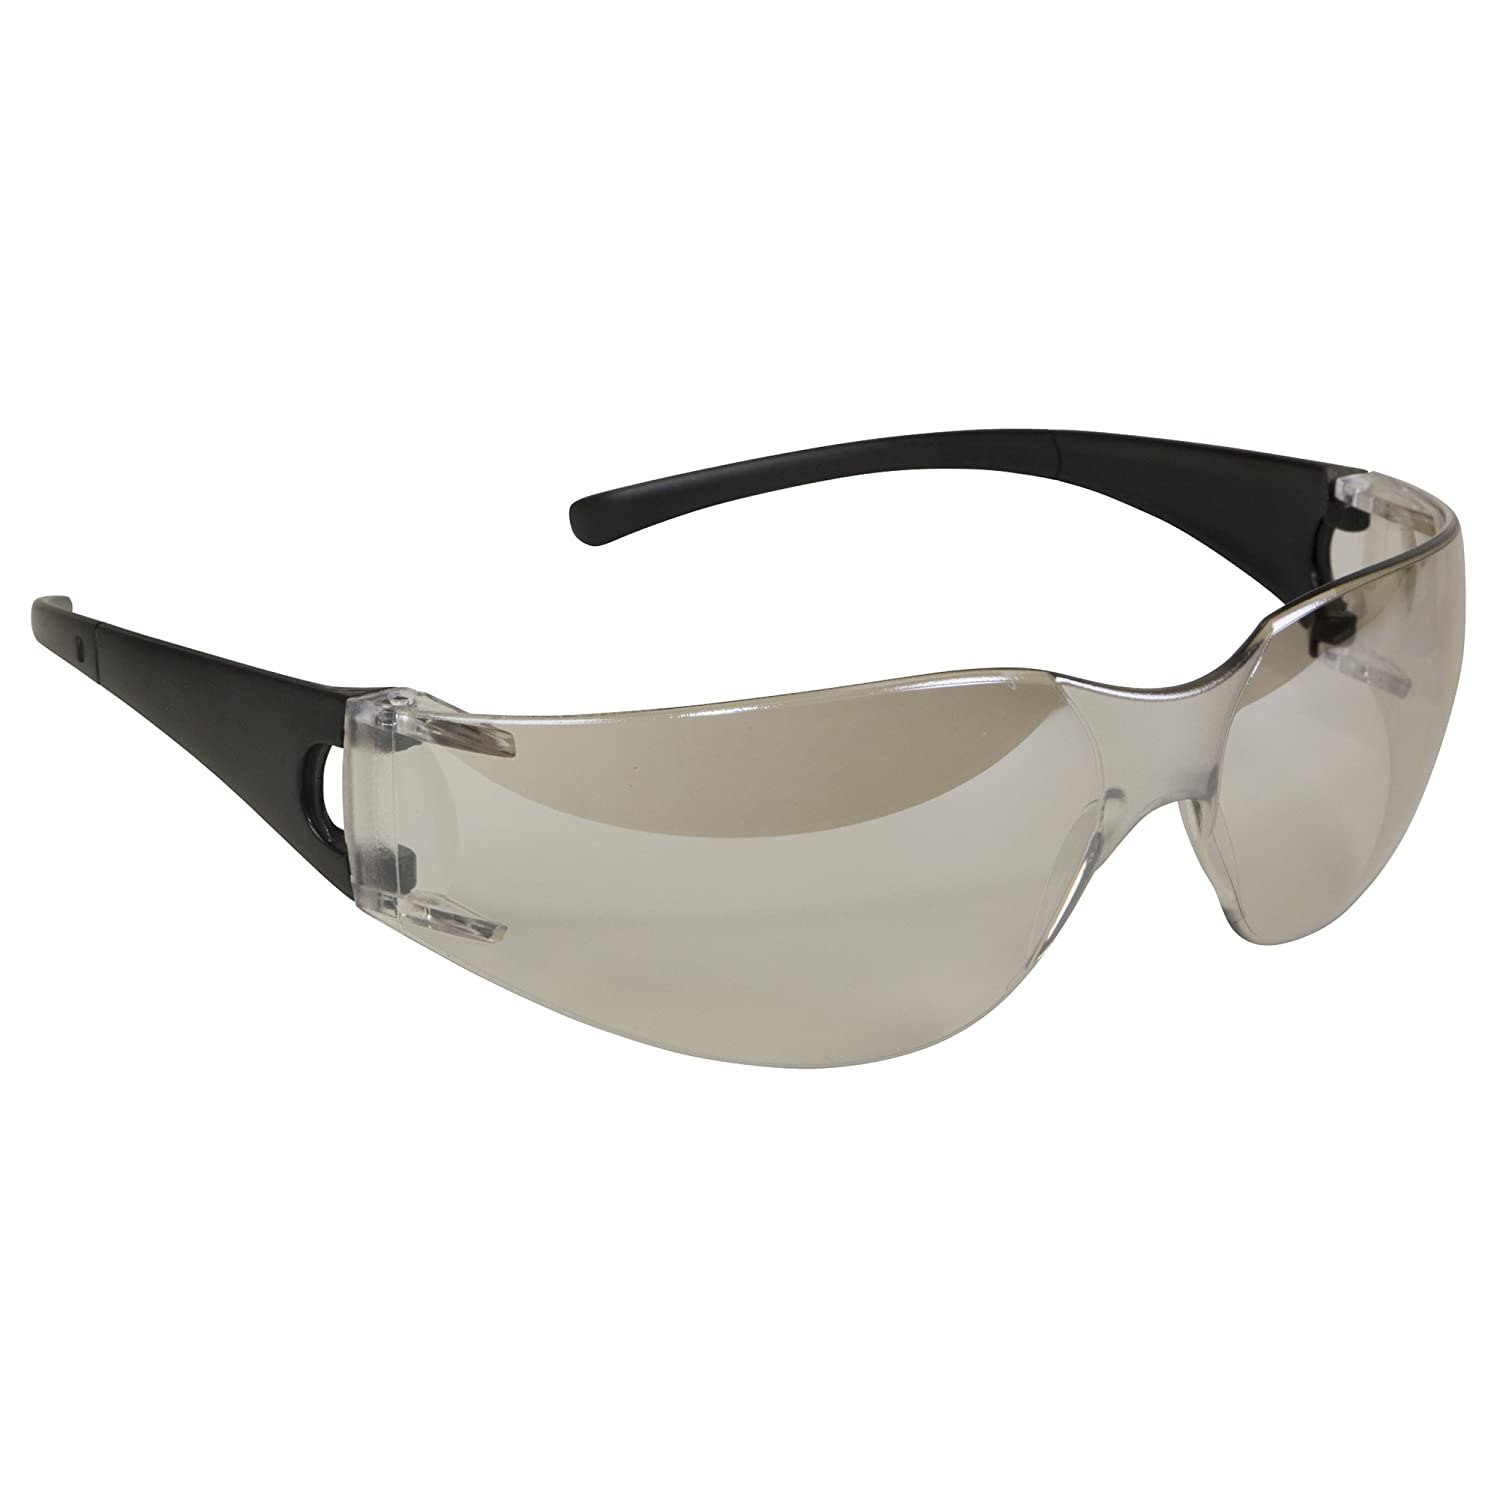 Jackson Safety 25638 V10 Element Safety Glasses, Indoor/Outdoor Lenses with Black Frame (Pack of 12) by Jackson Safety B008D7Y50S